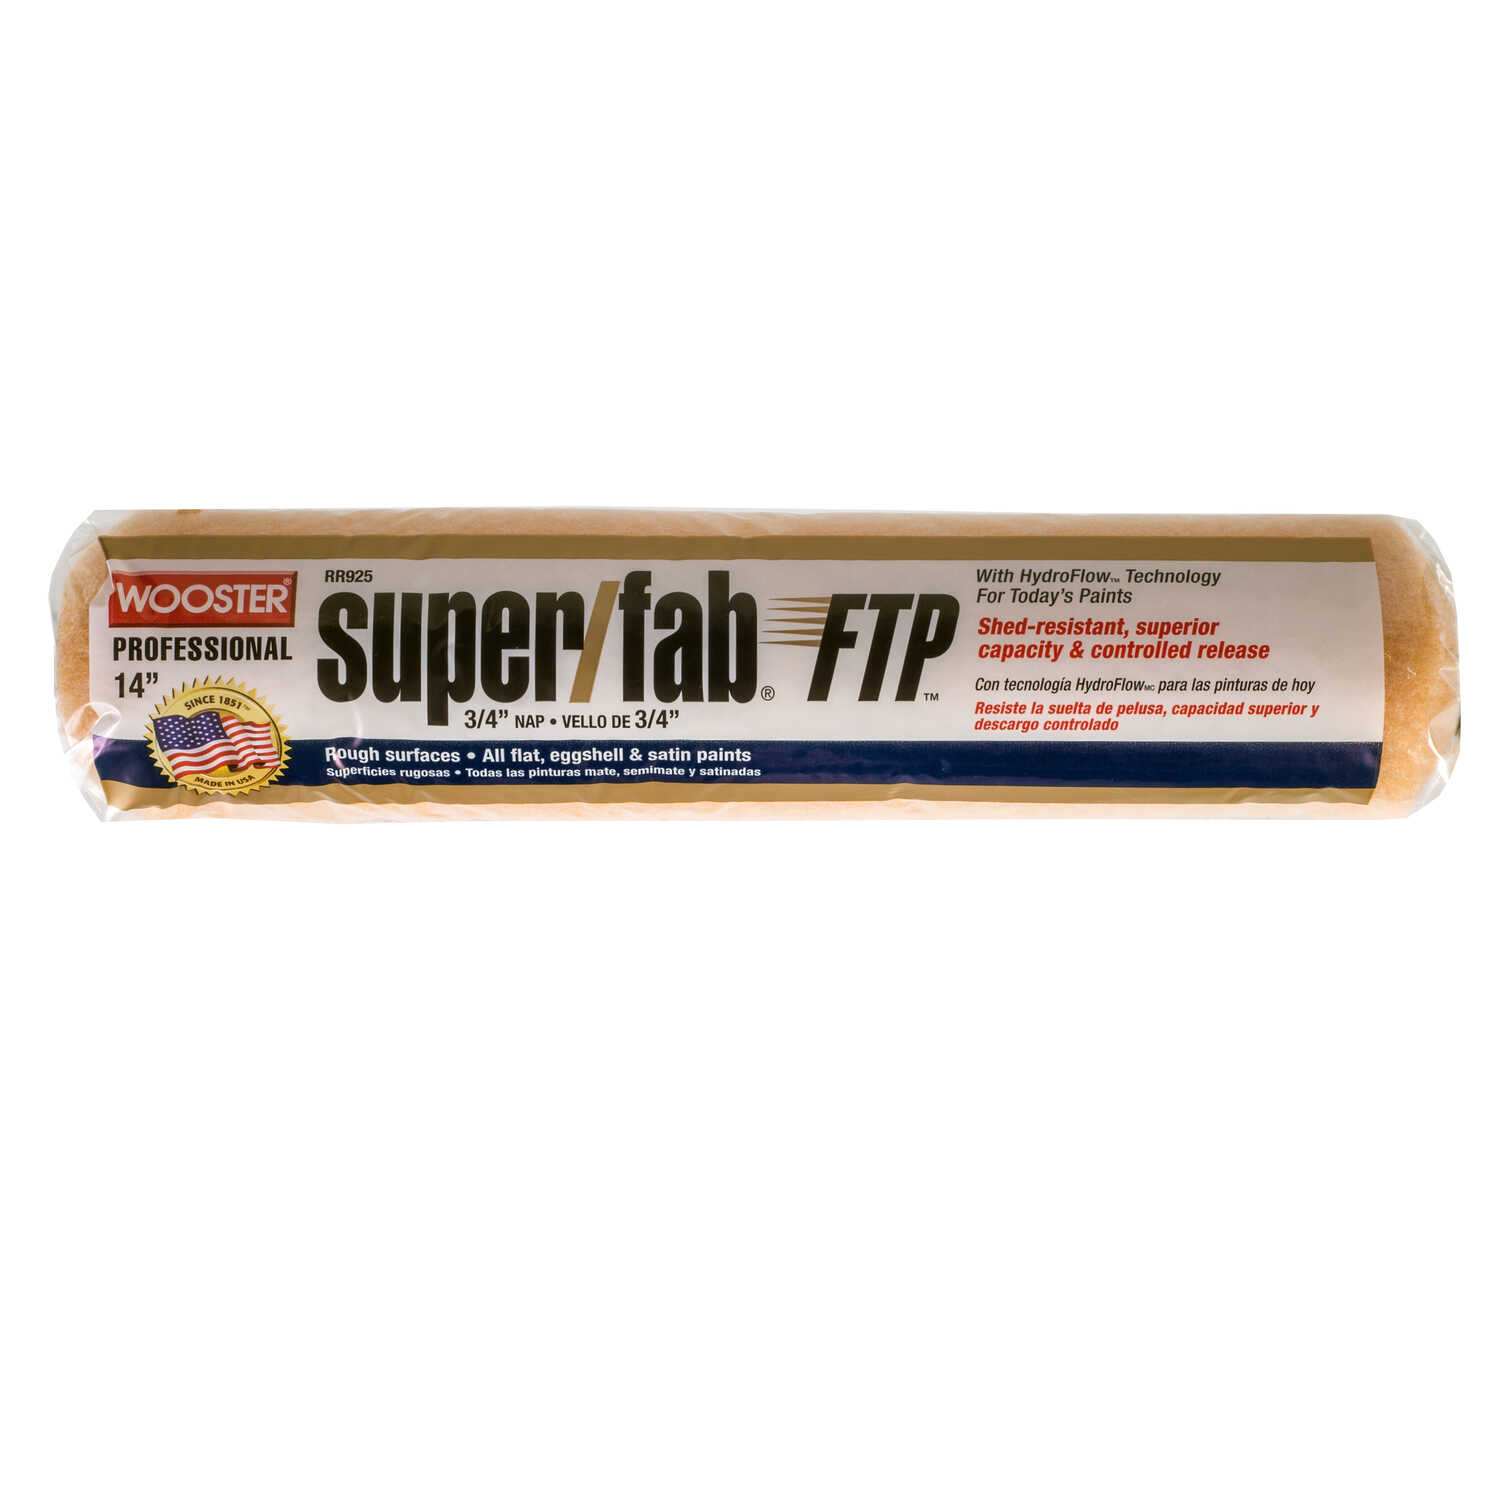 Wooster  Super/Fab FTP  Synthetic Blend  3/4 in.  x 14 in. W Paint Roller Cover  1 pk